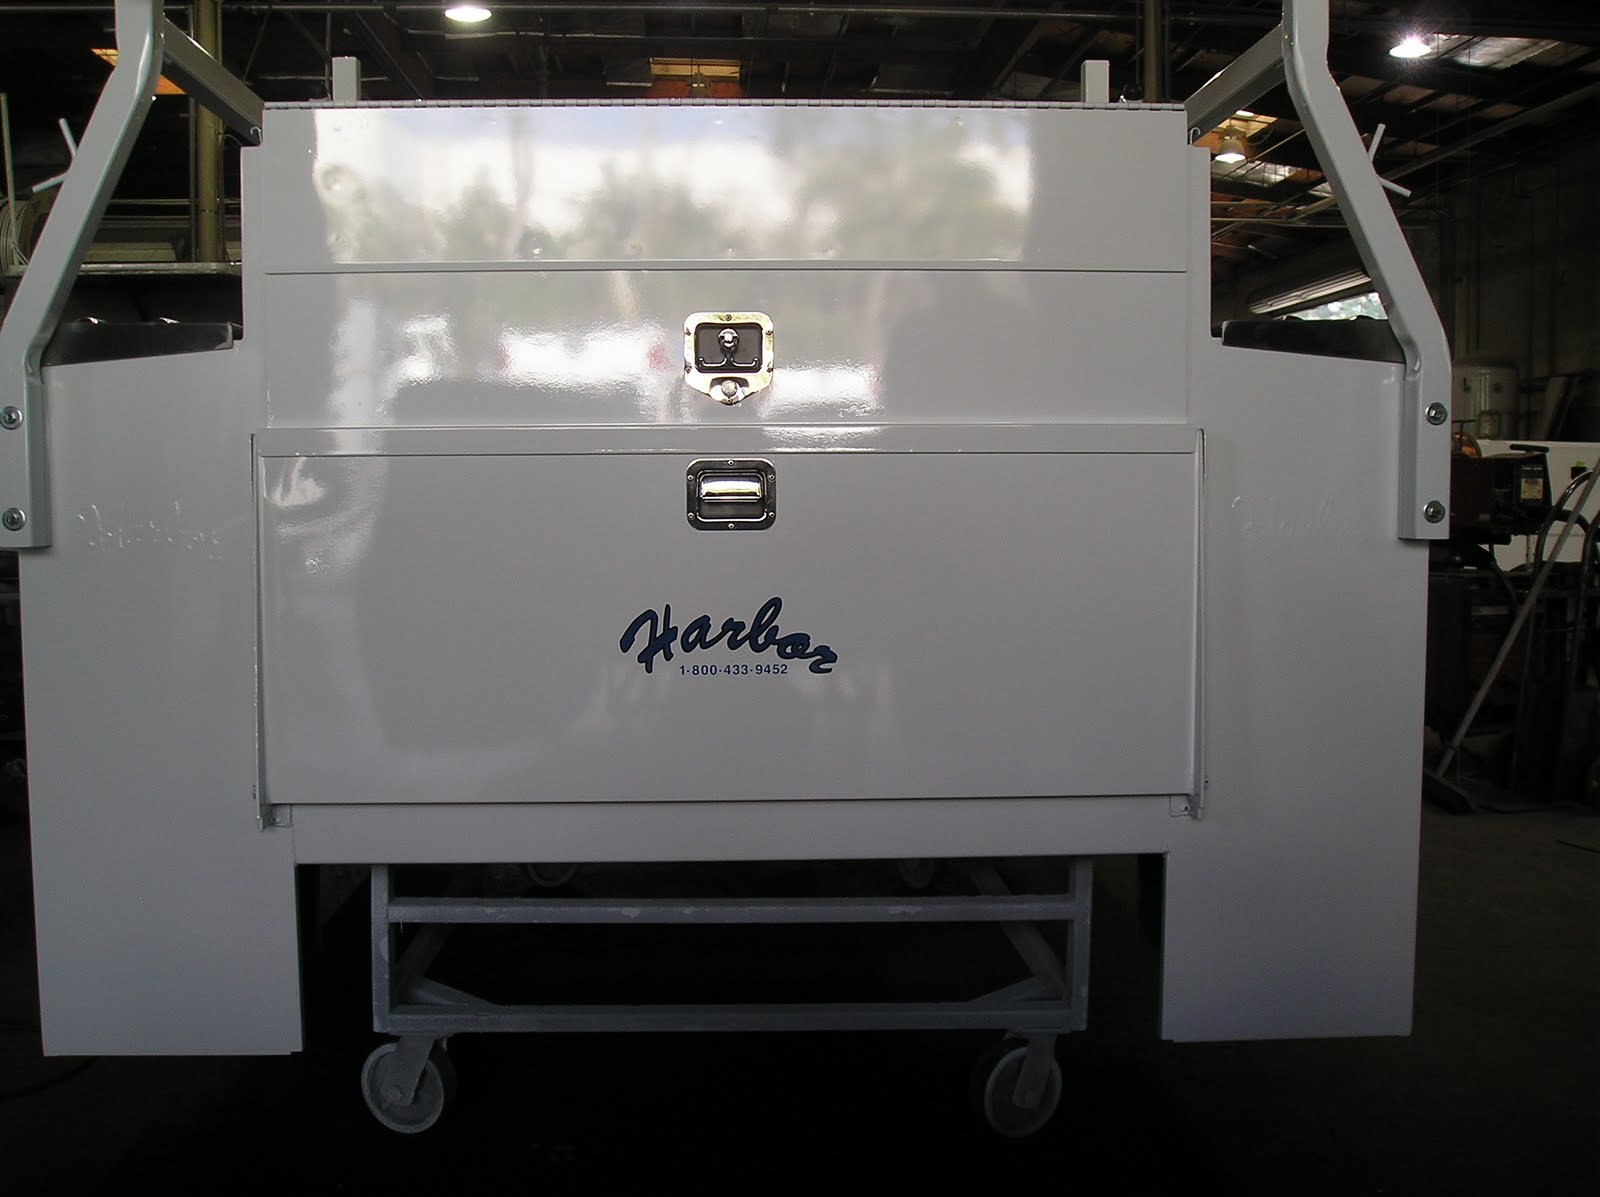 Service Body Tailgate : Harbor truck bodies service body tailgate options